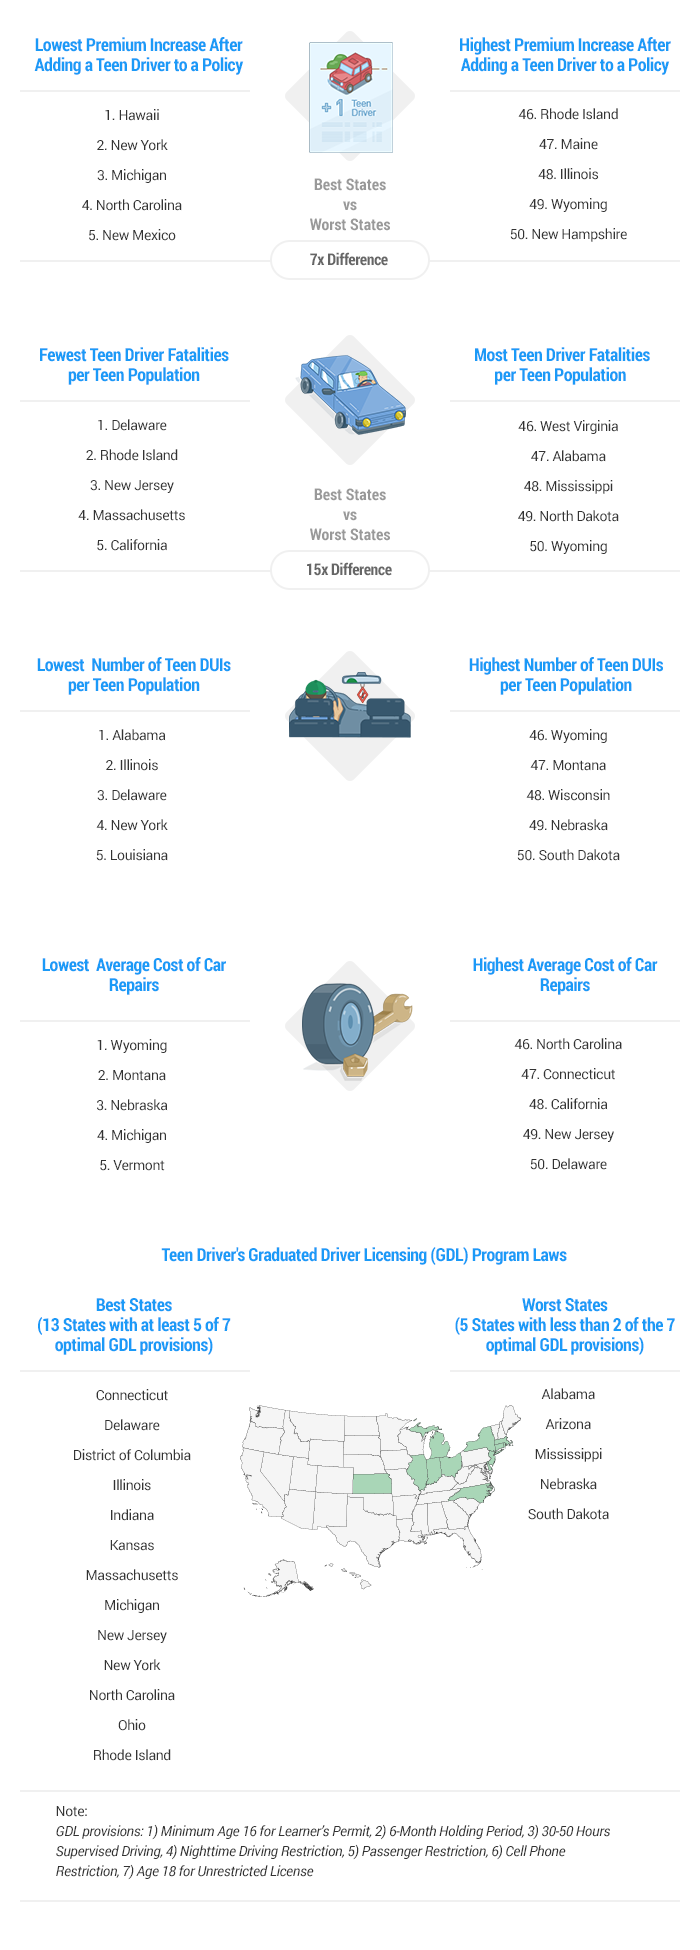 Artwork Best & Worst States for Teen Drivers v3